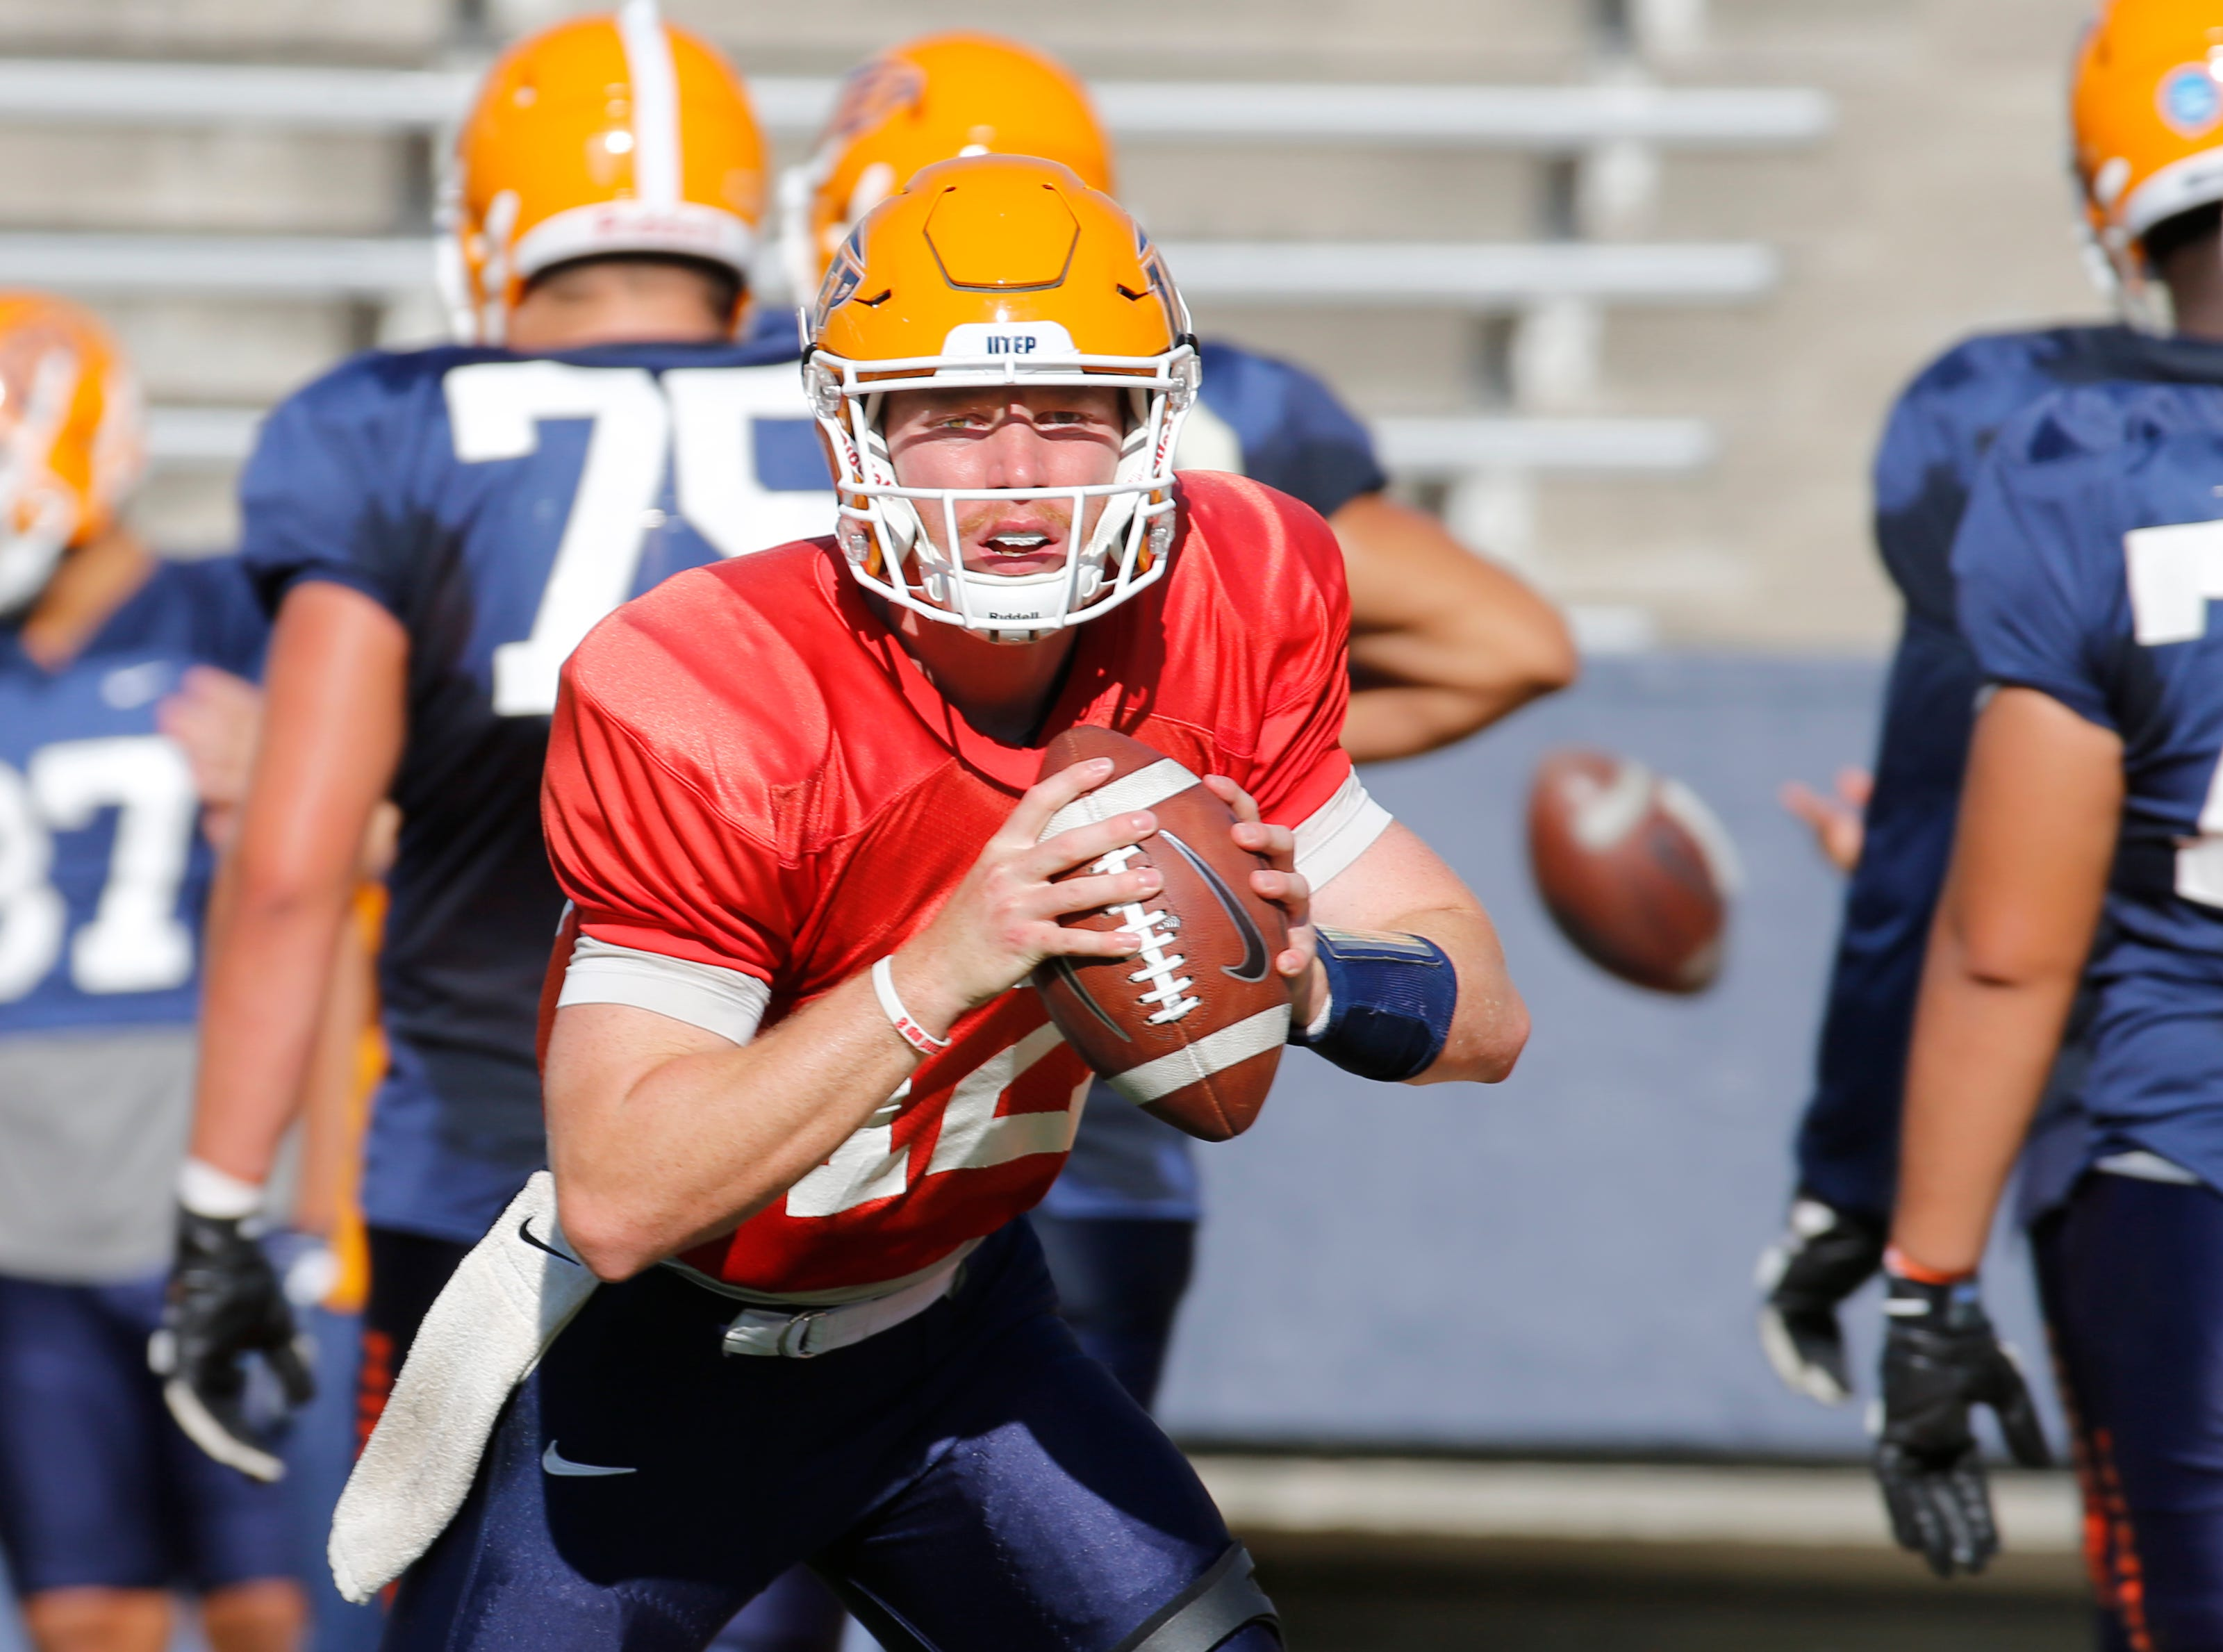 UTEP quarterback Ryan Metz looks for a receiver during passing drills Wednesday in the Sun Bowl. The Miners continue their preparations for their game Saturday afternoon against the Aggies of NMSU in the Sun Bowl.